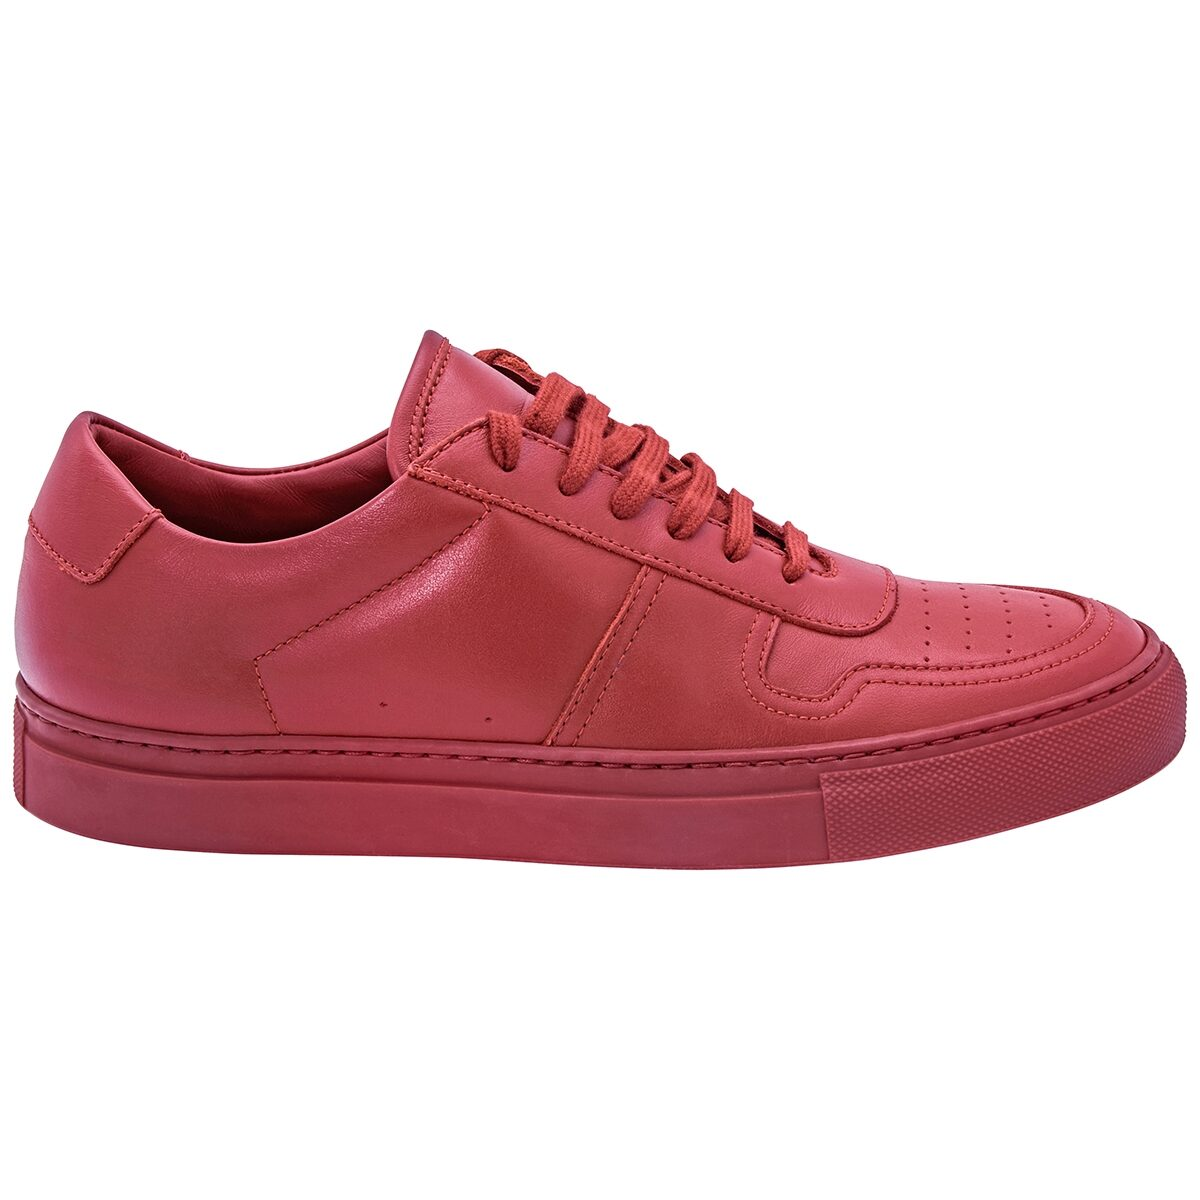 Common Projects Men's Red Low Top